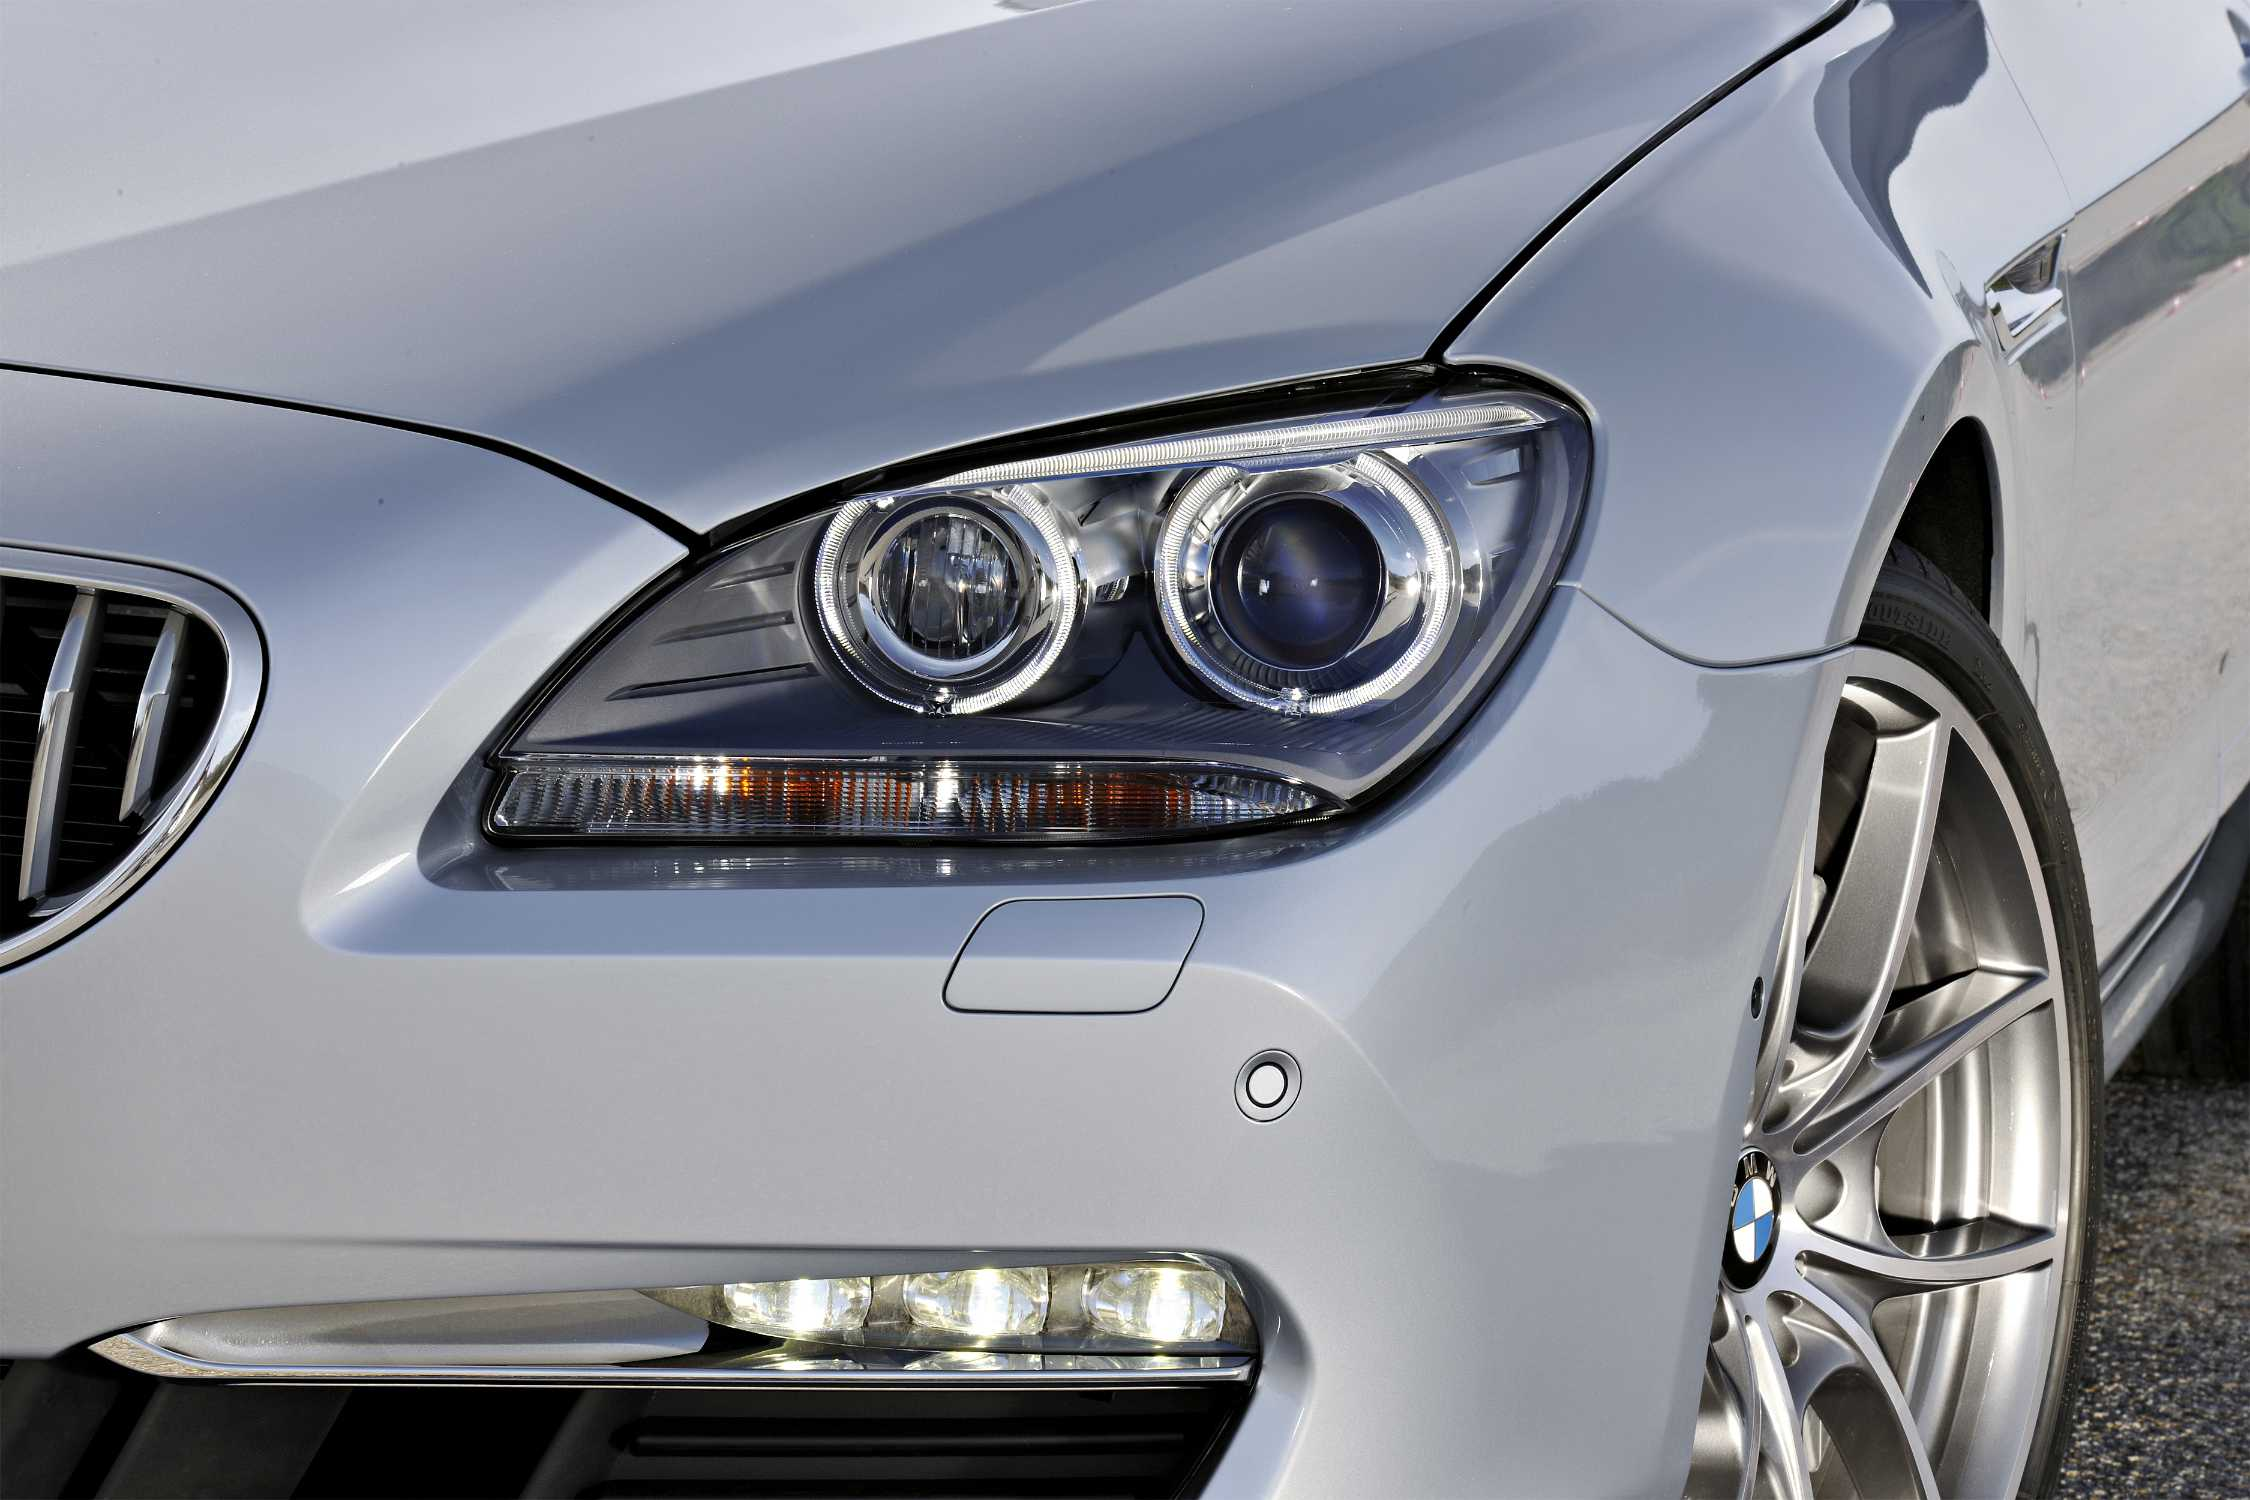 The New Bmw 6 Series Convertible Bi Xenon Headlamps With